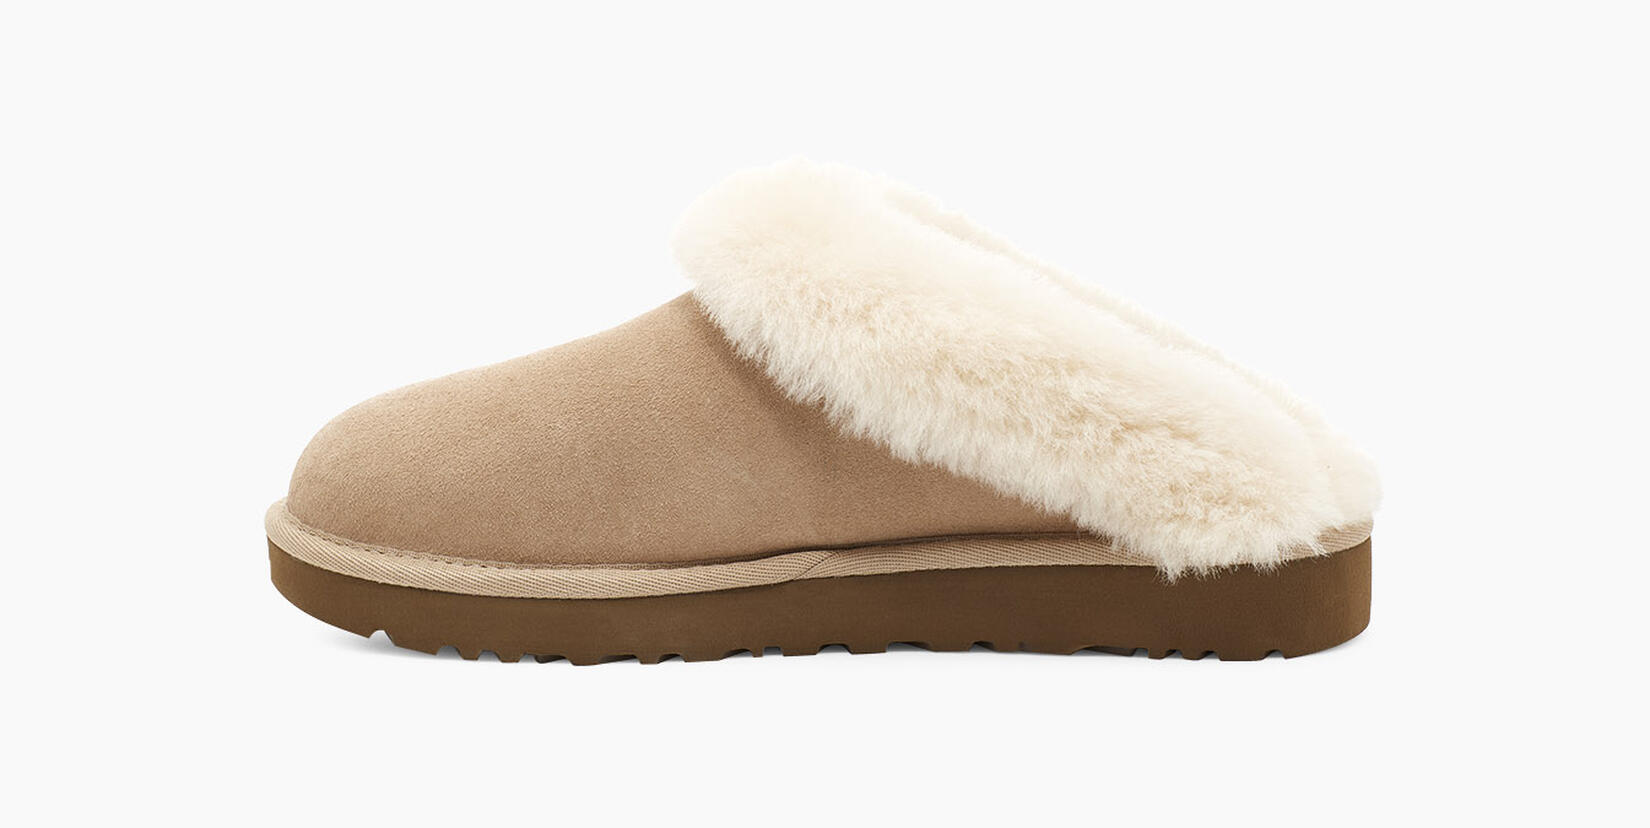 Cluggette Slipper